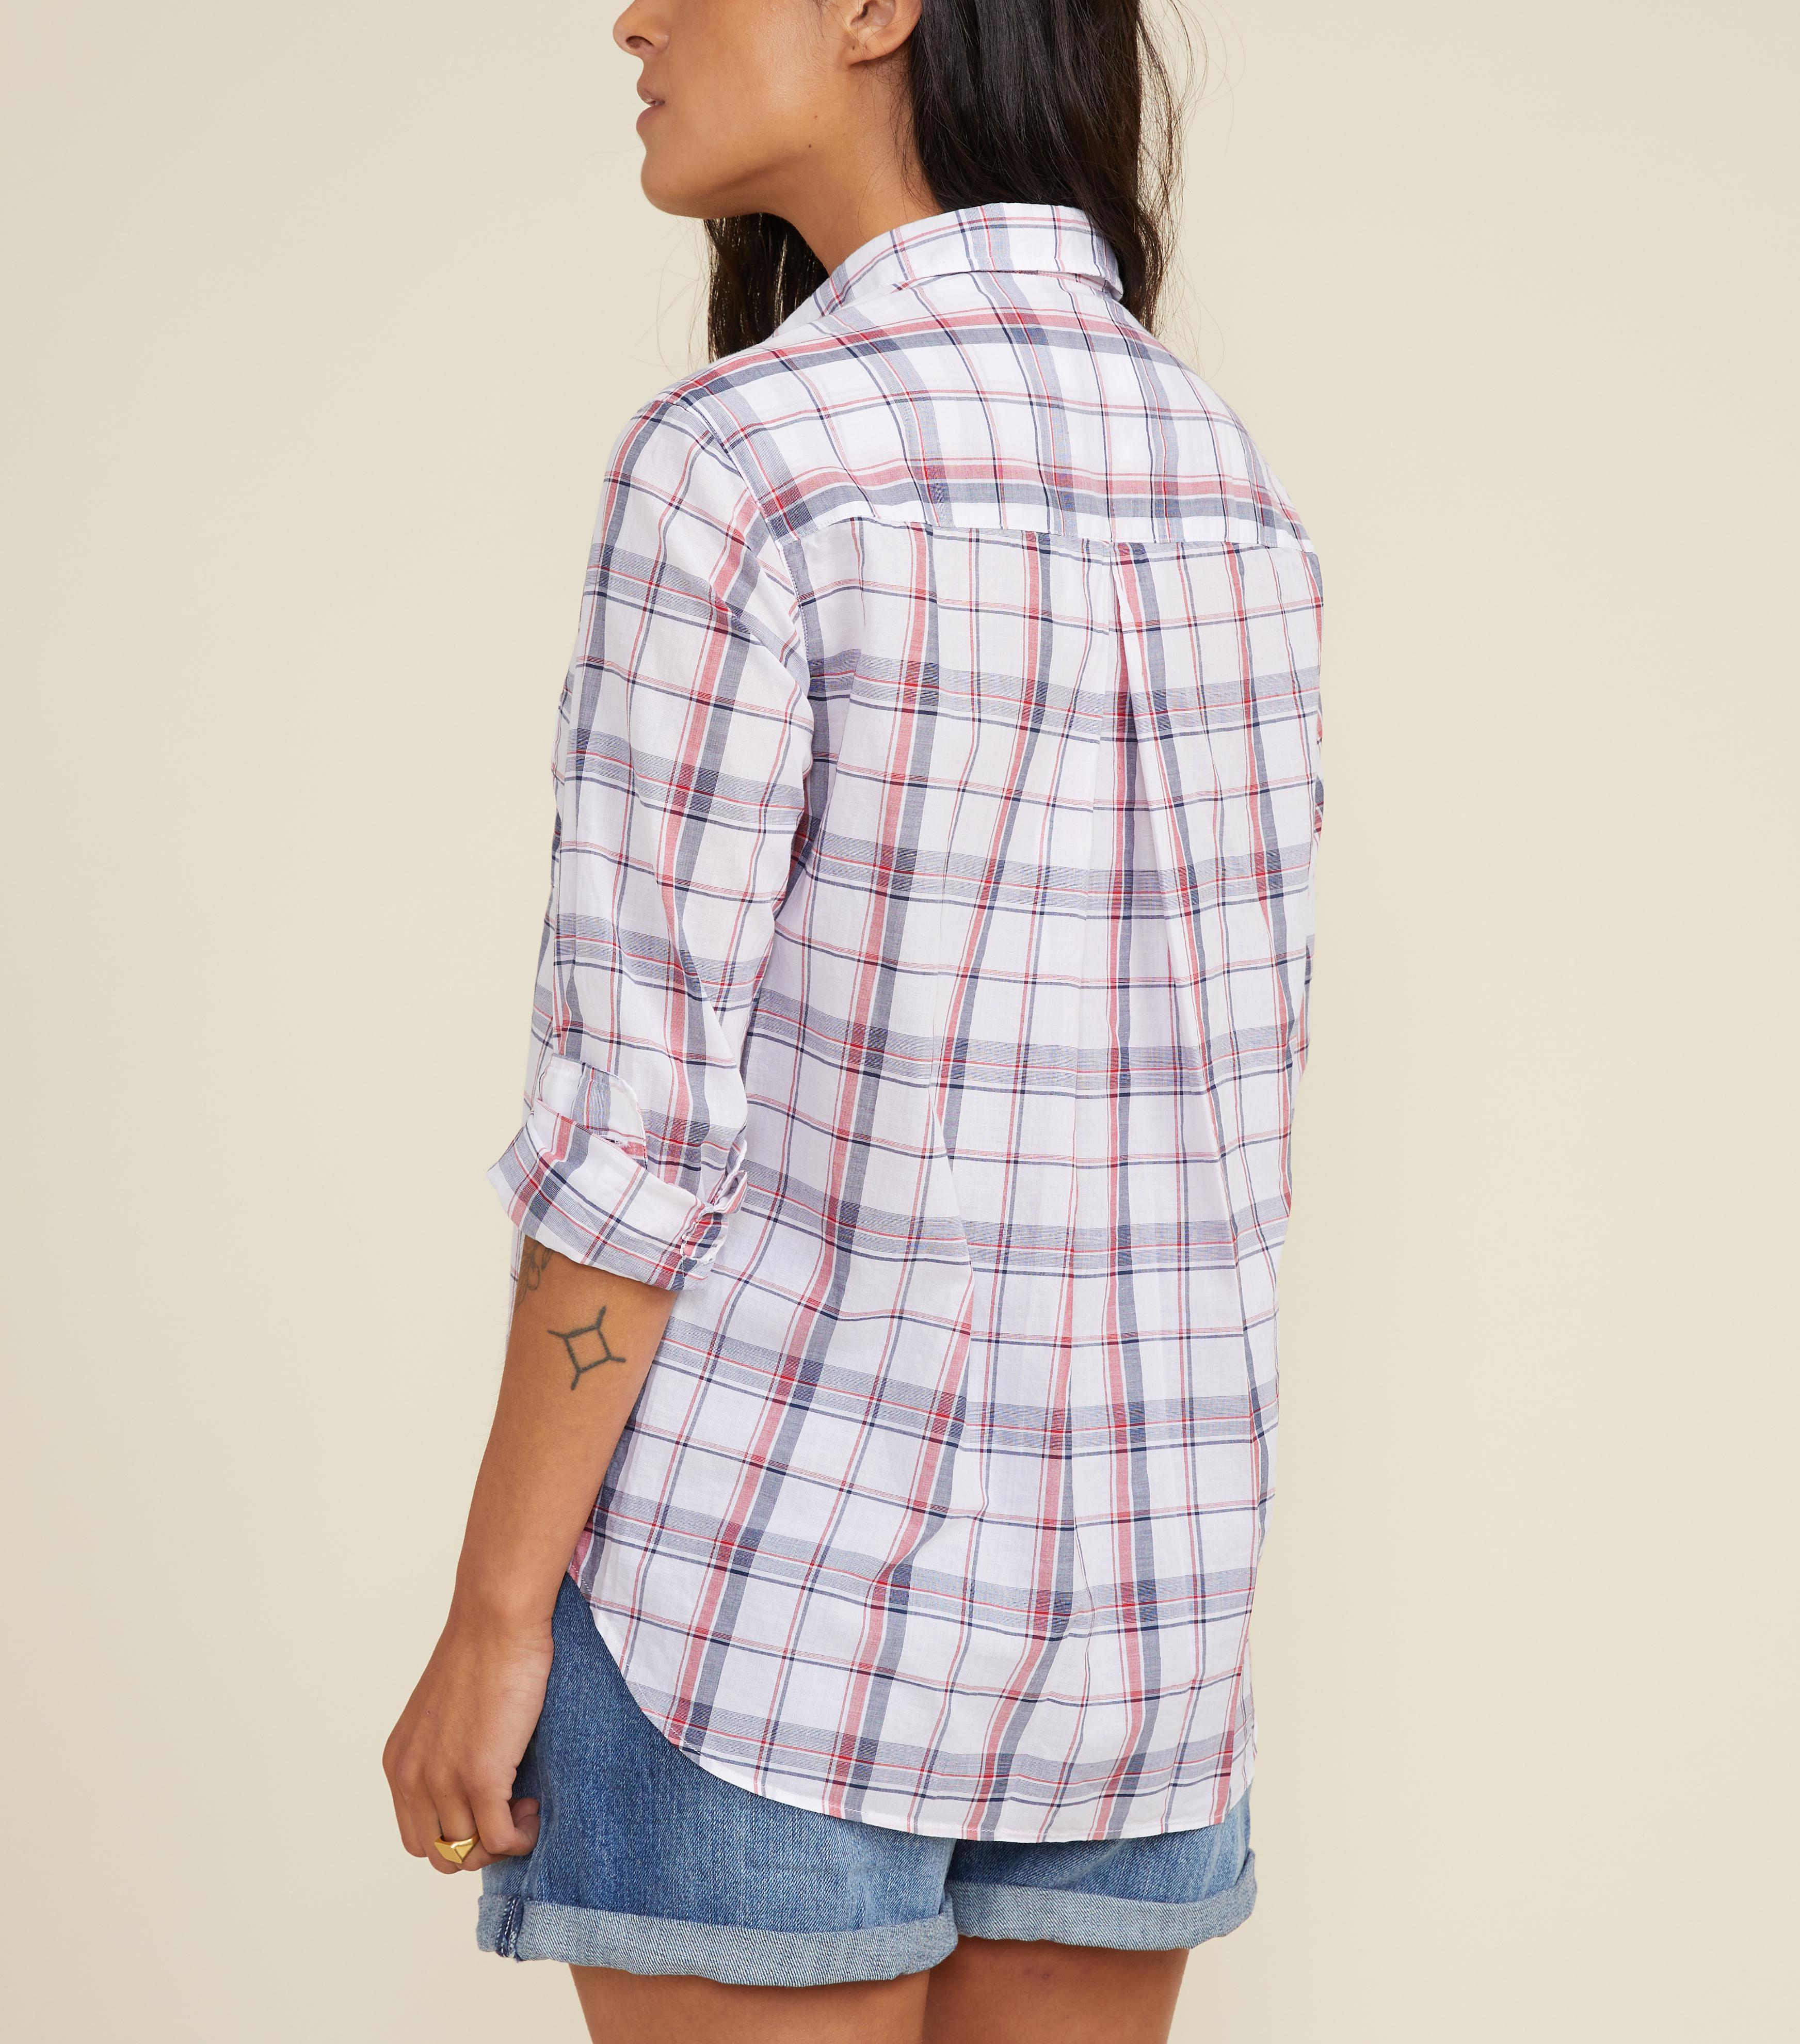 The Hero White with Navy and Red Plaid, Tissue Cotton Final Sale 3